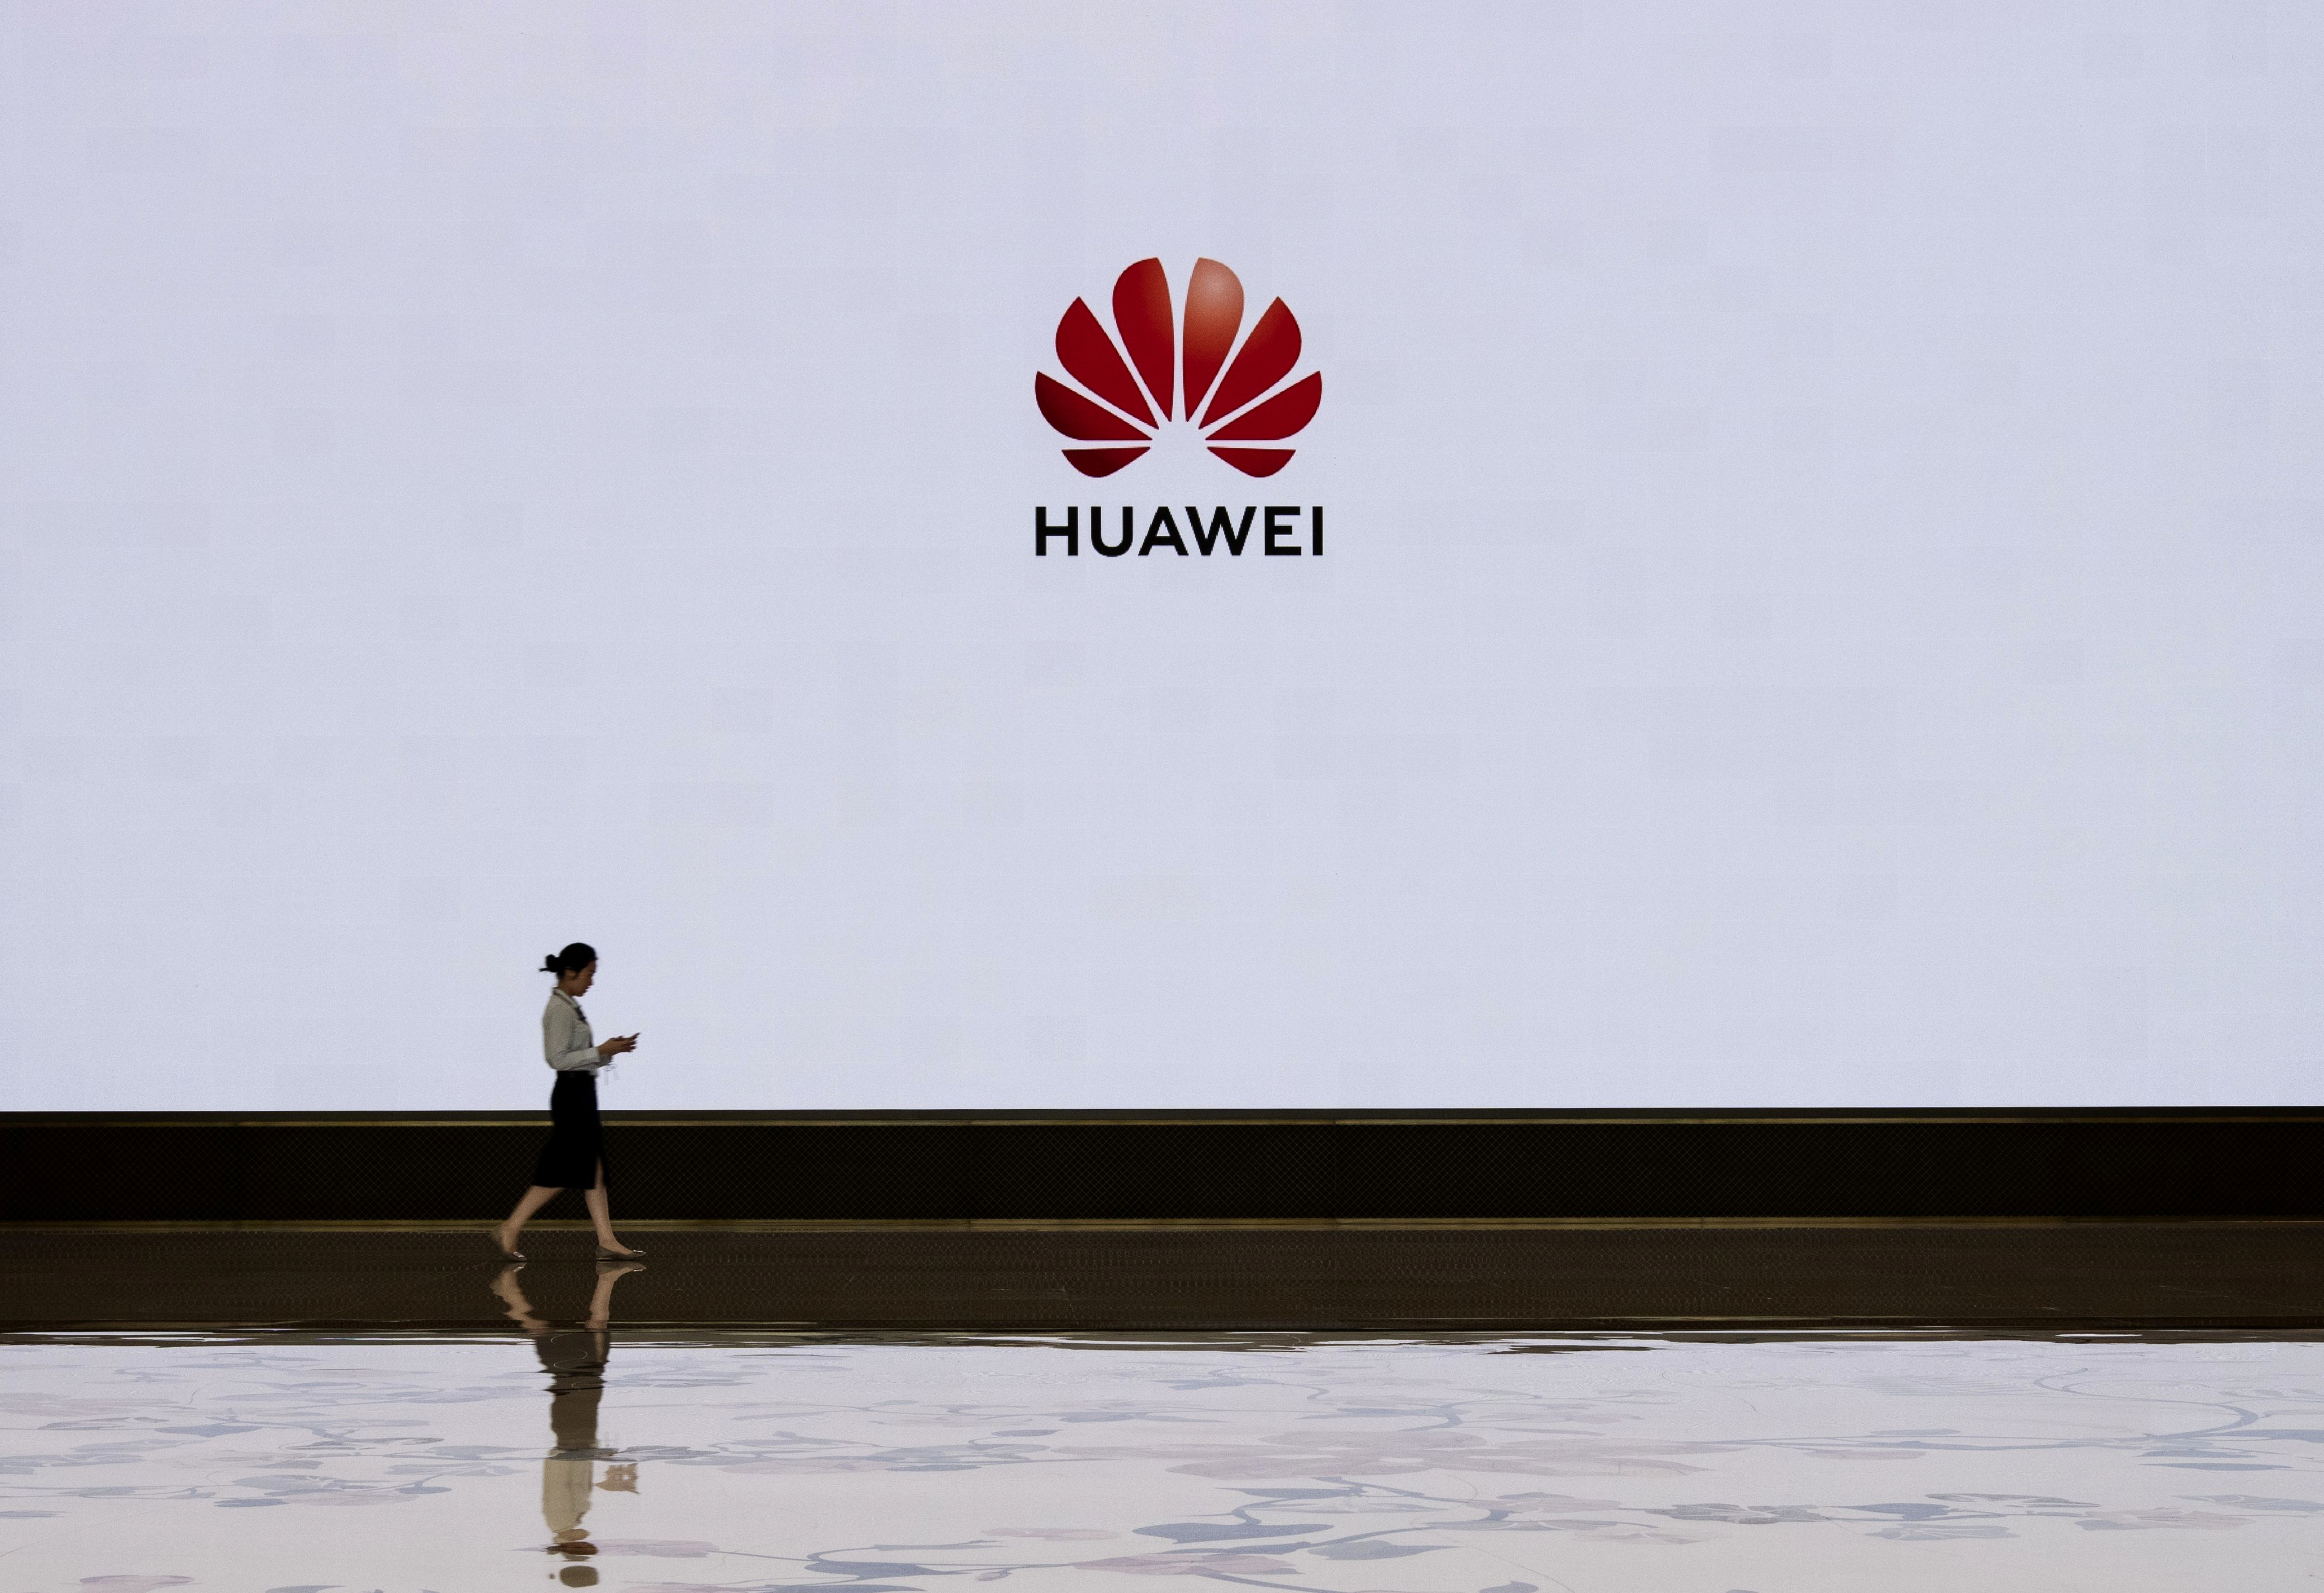 """A person walking past a sign reading """"Huawei."""""""